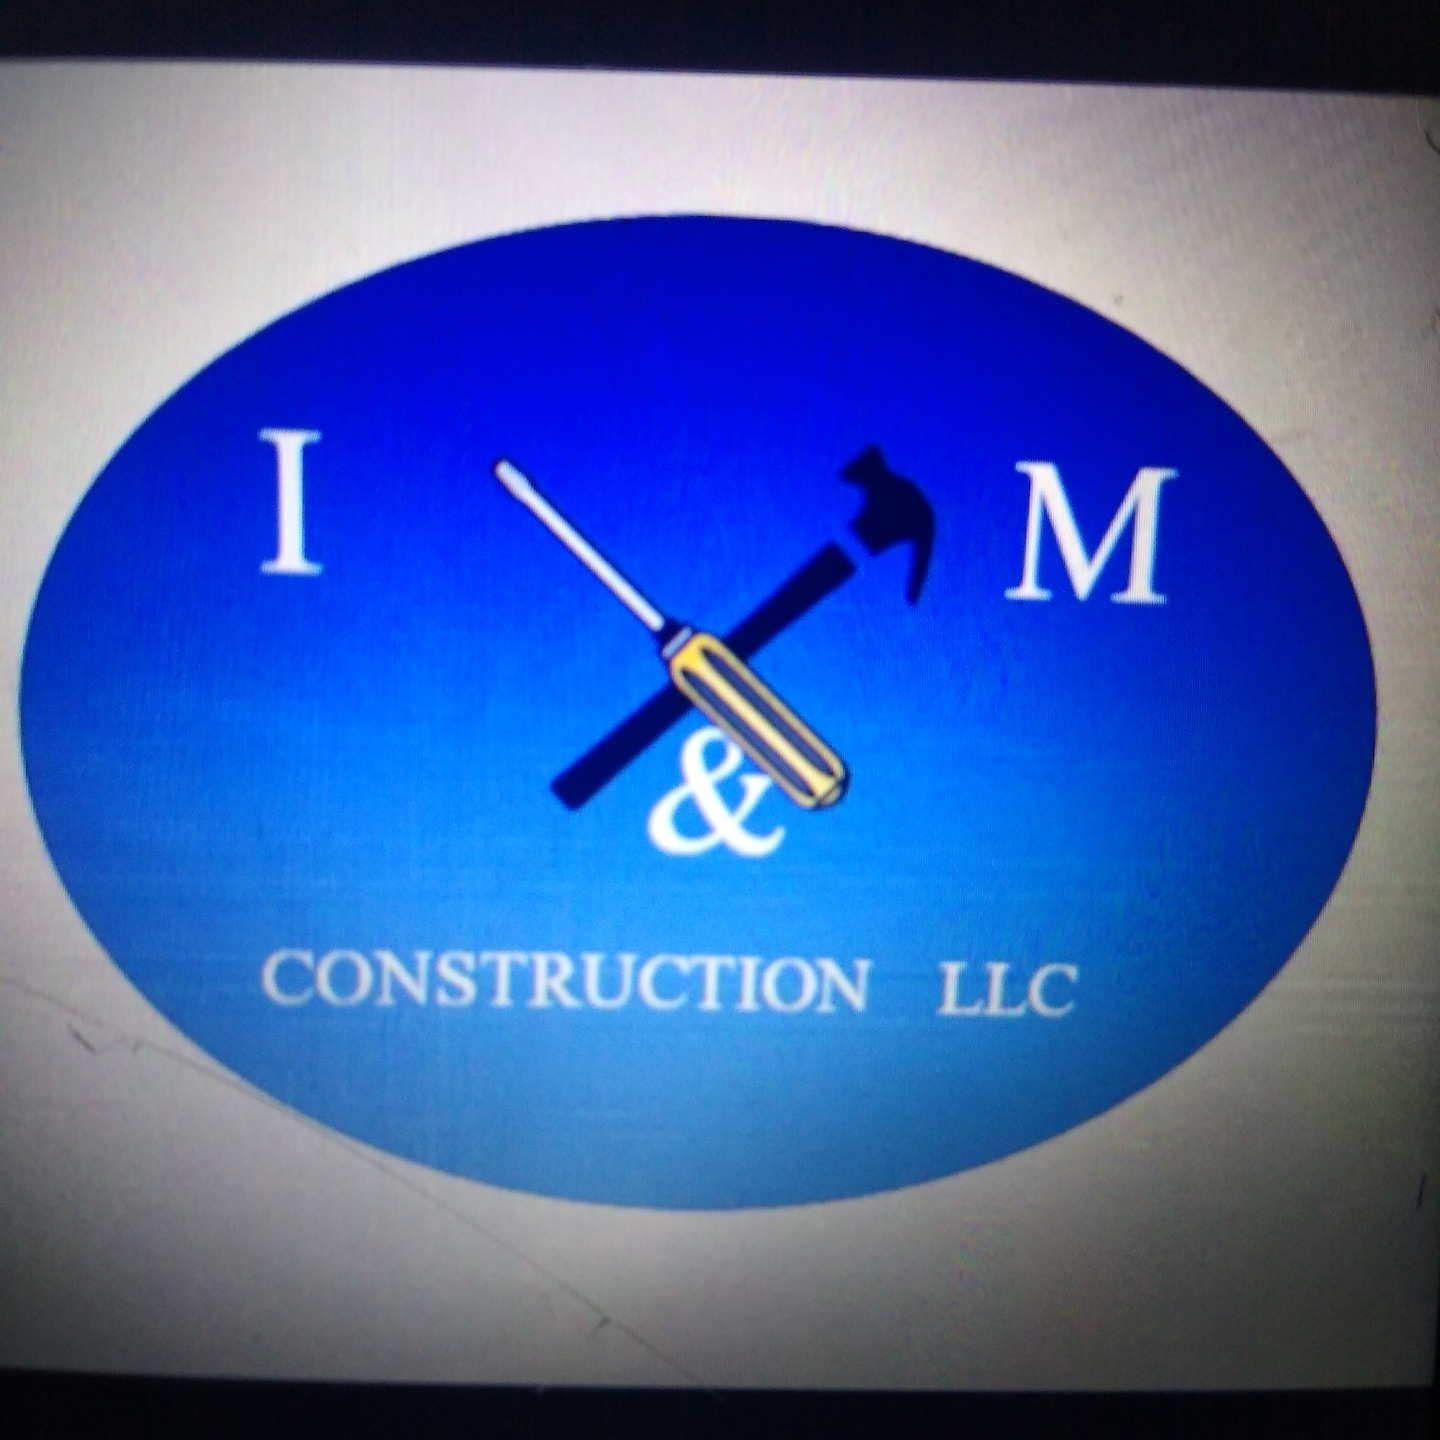 I&M construction LLC